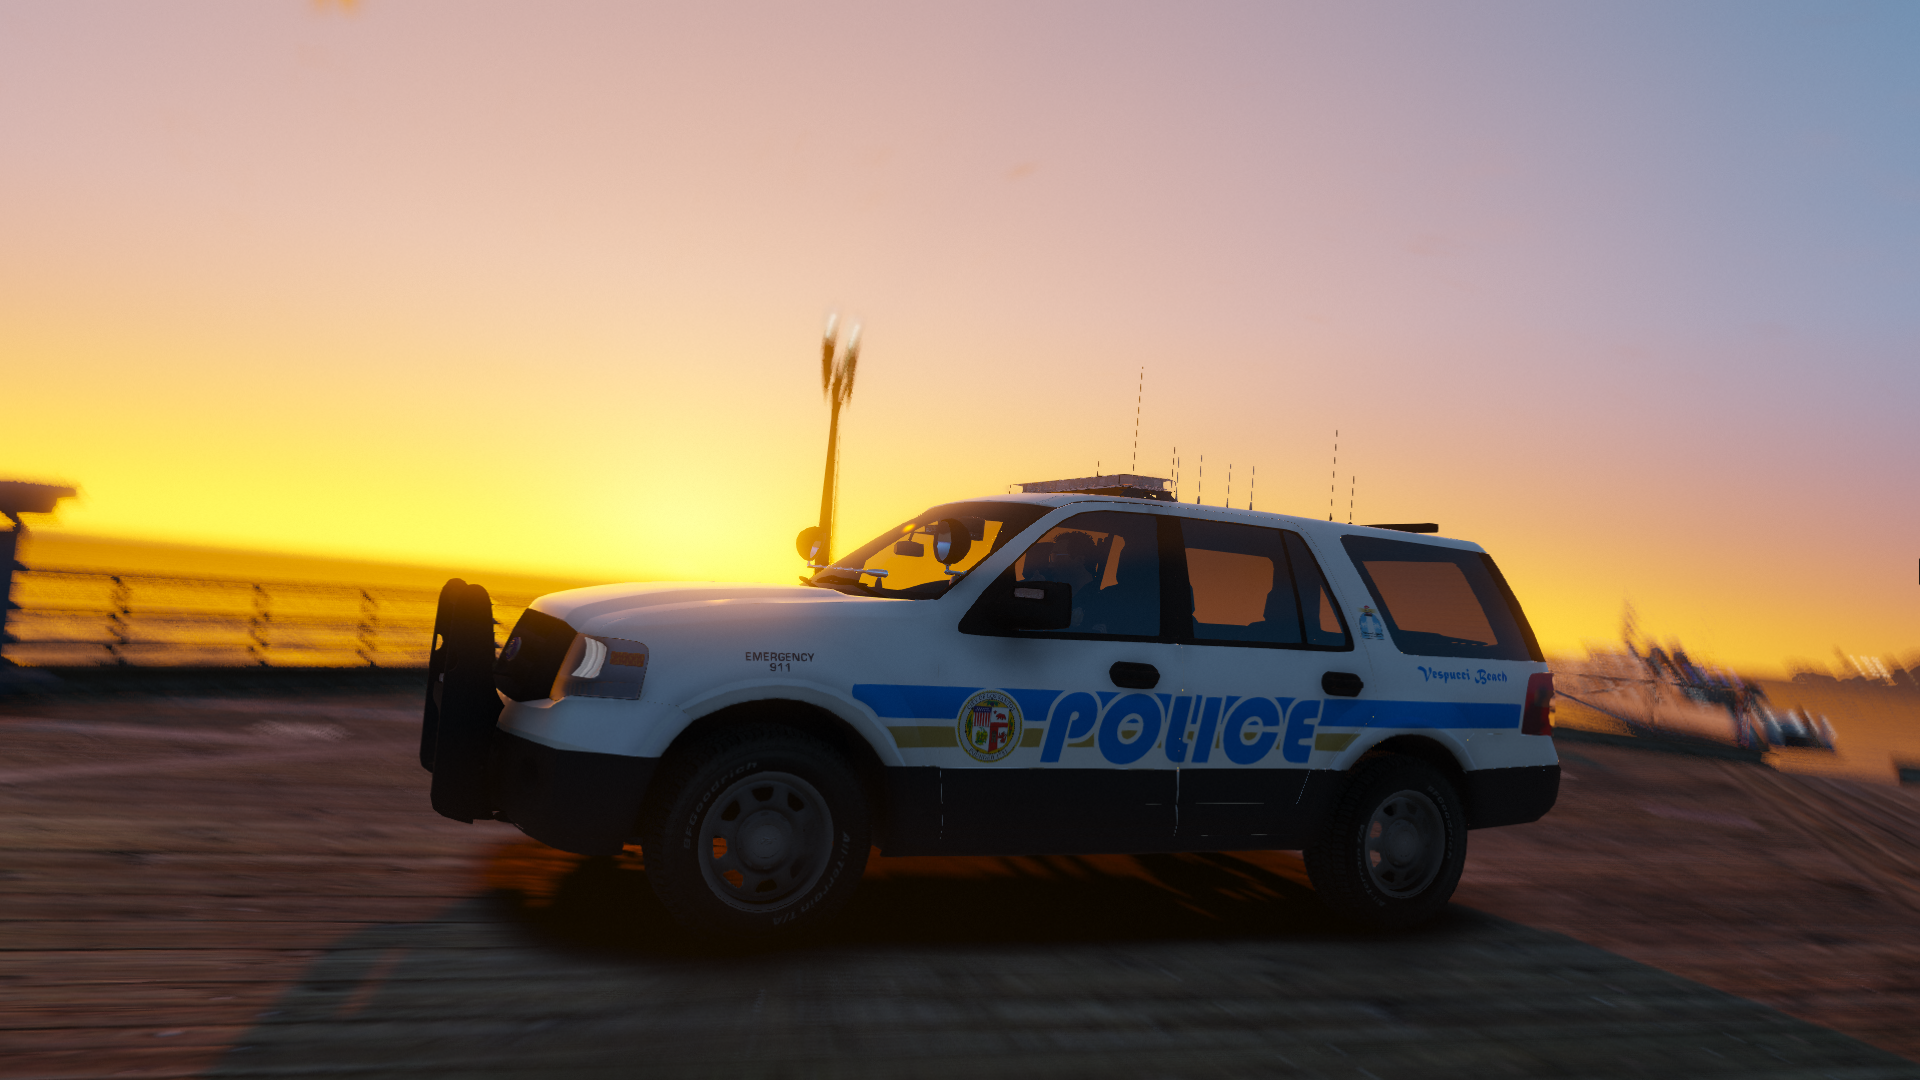 Vespucci Beach Police 2013 Ford Expedition Gta5 Mods Com